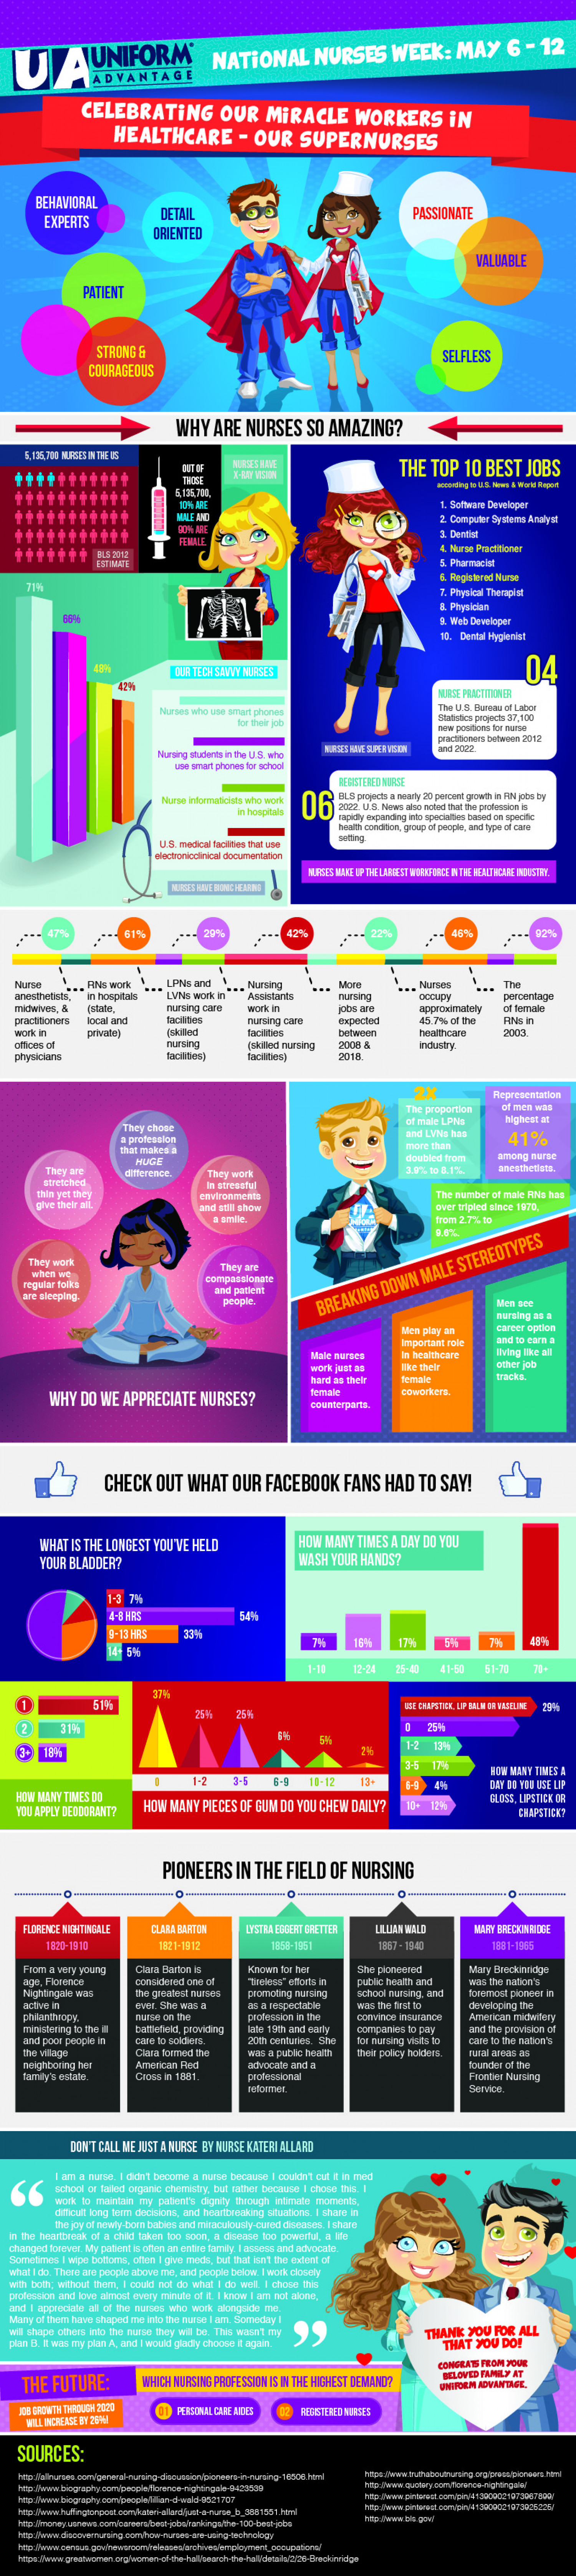 Happy Nurses Week from Uniform Advantage! Infographic